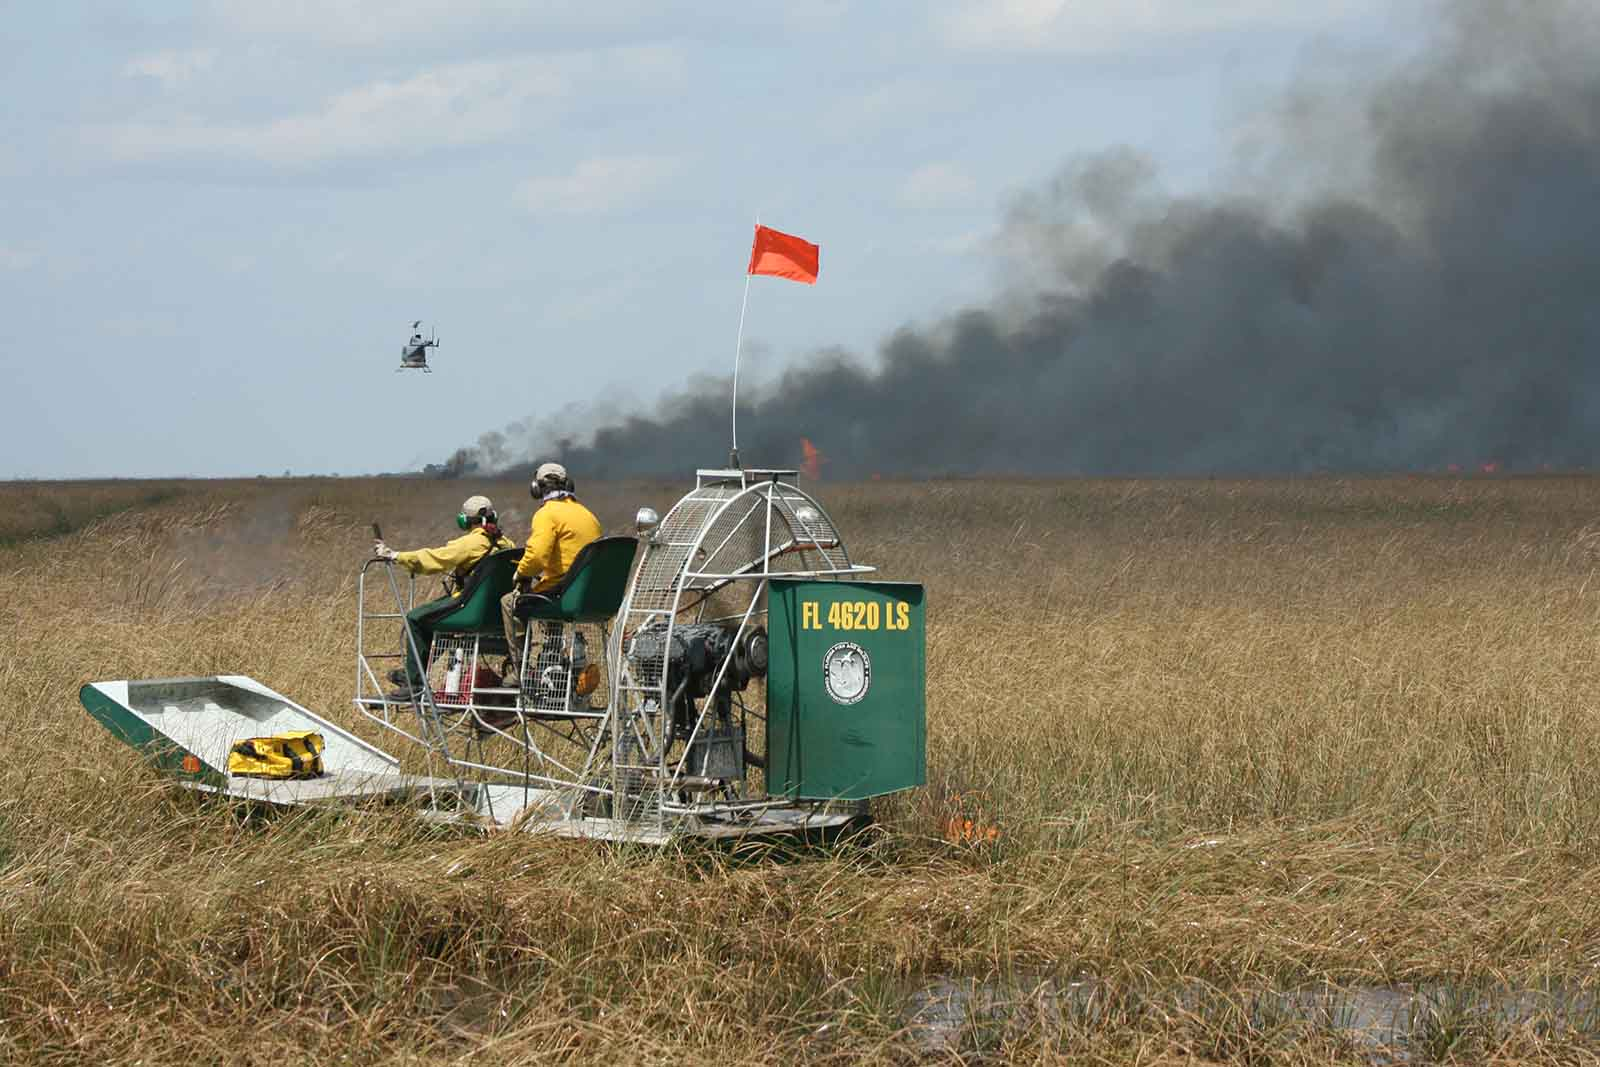 helicopter and airboat during  prescribed fire